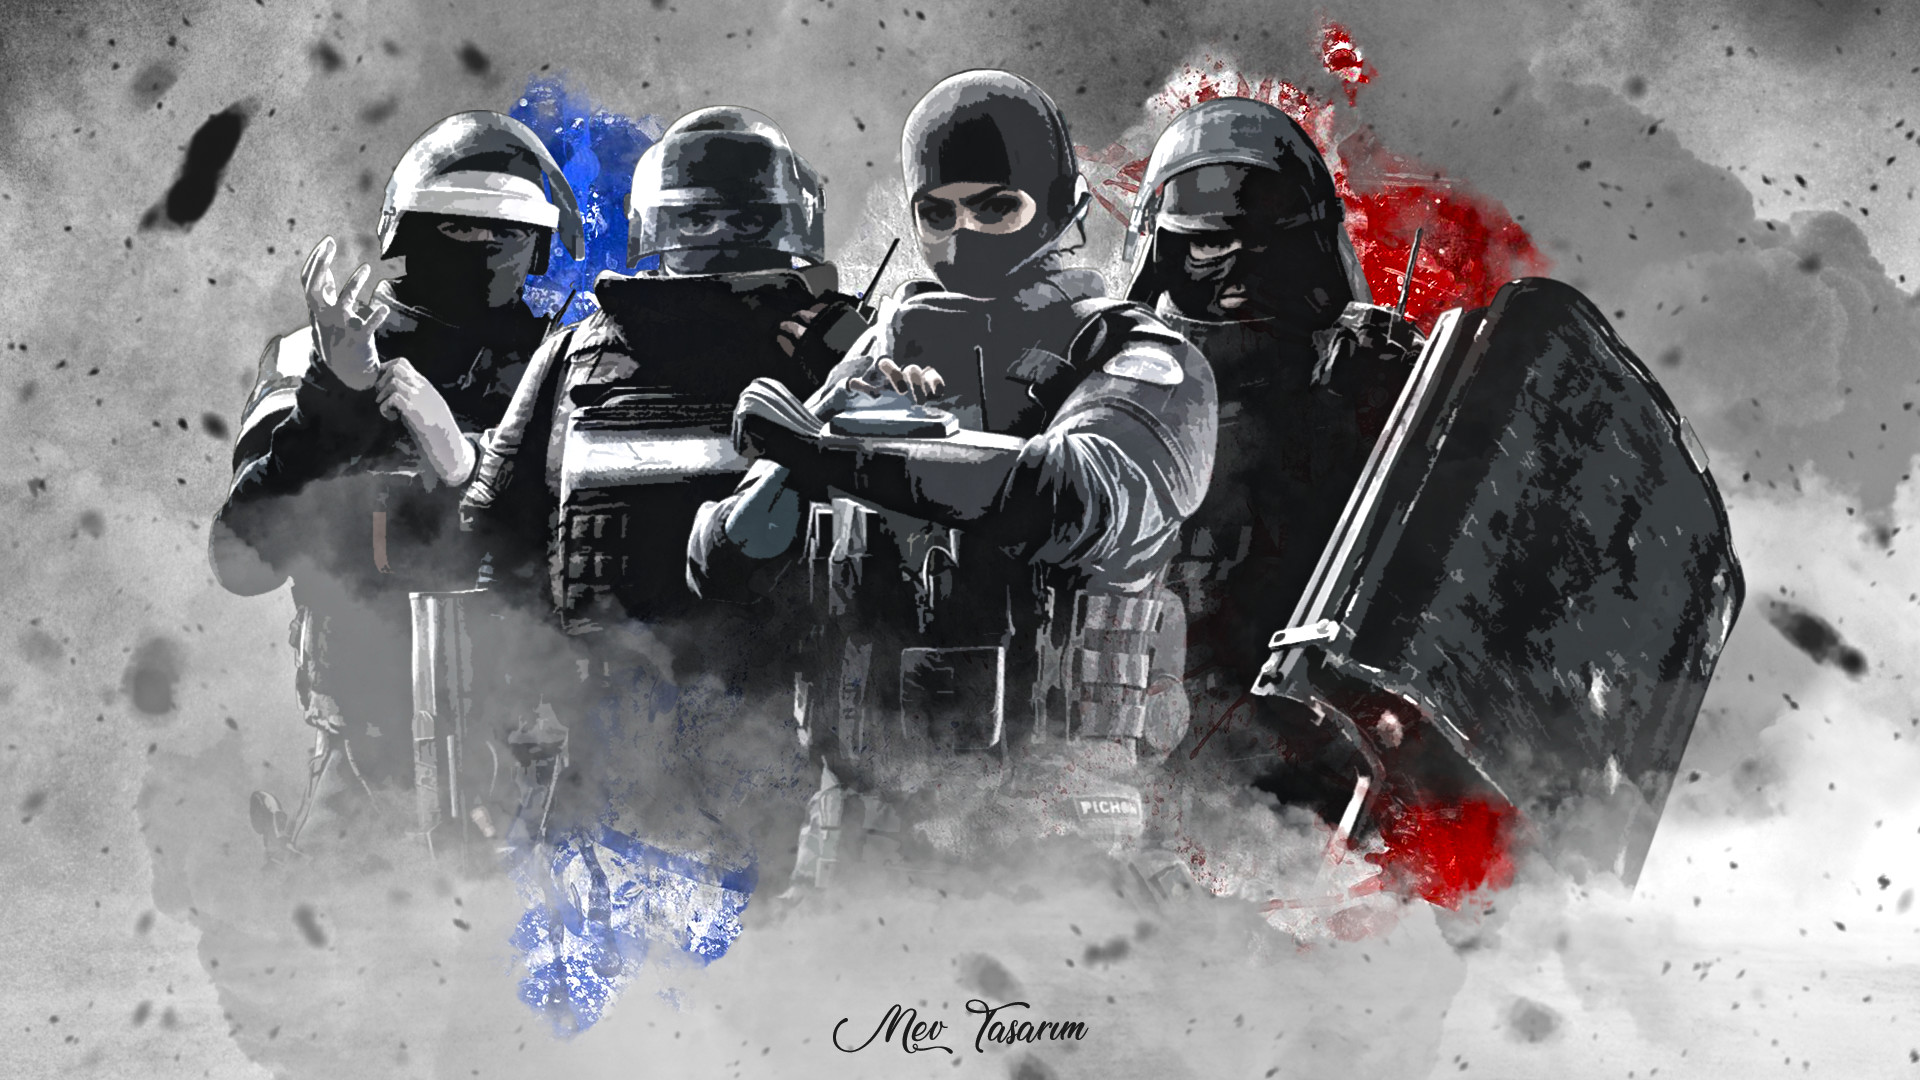 Mustafa Eren Vural Rainbow Six Siege Gign Team Wallpaper